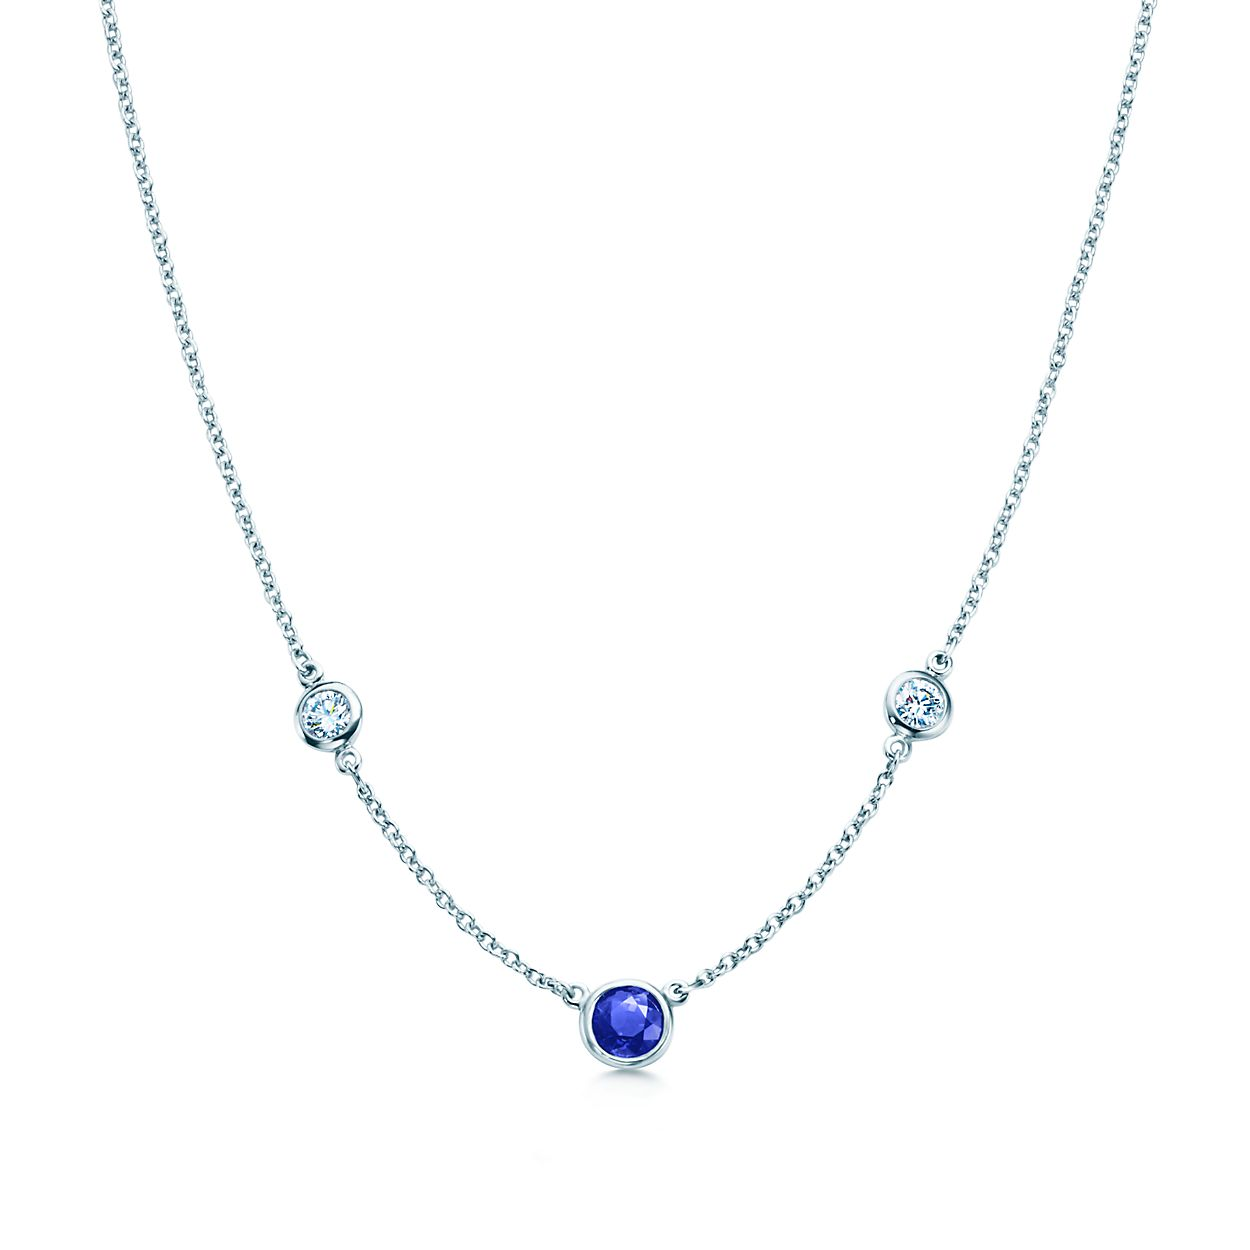 cd4fd4347 Elsa Peretti Color By The Yard Necklace Of Diamonds And A Sapphire. Tiffany  Soleste Pendant